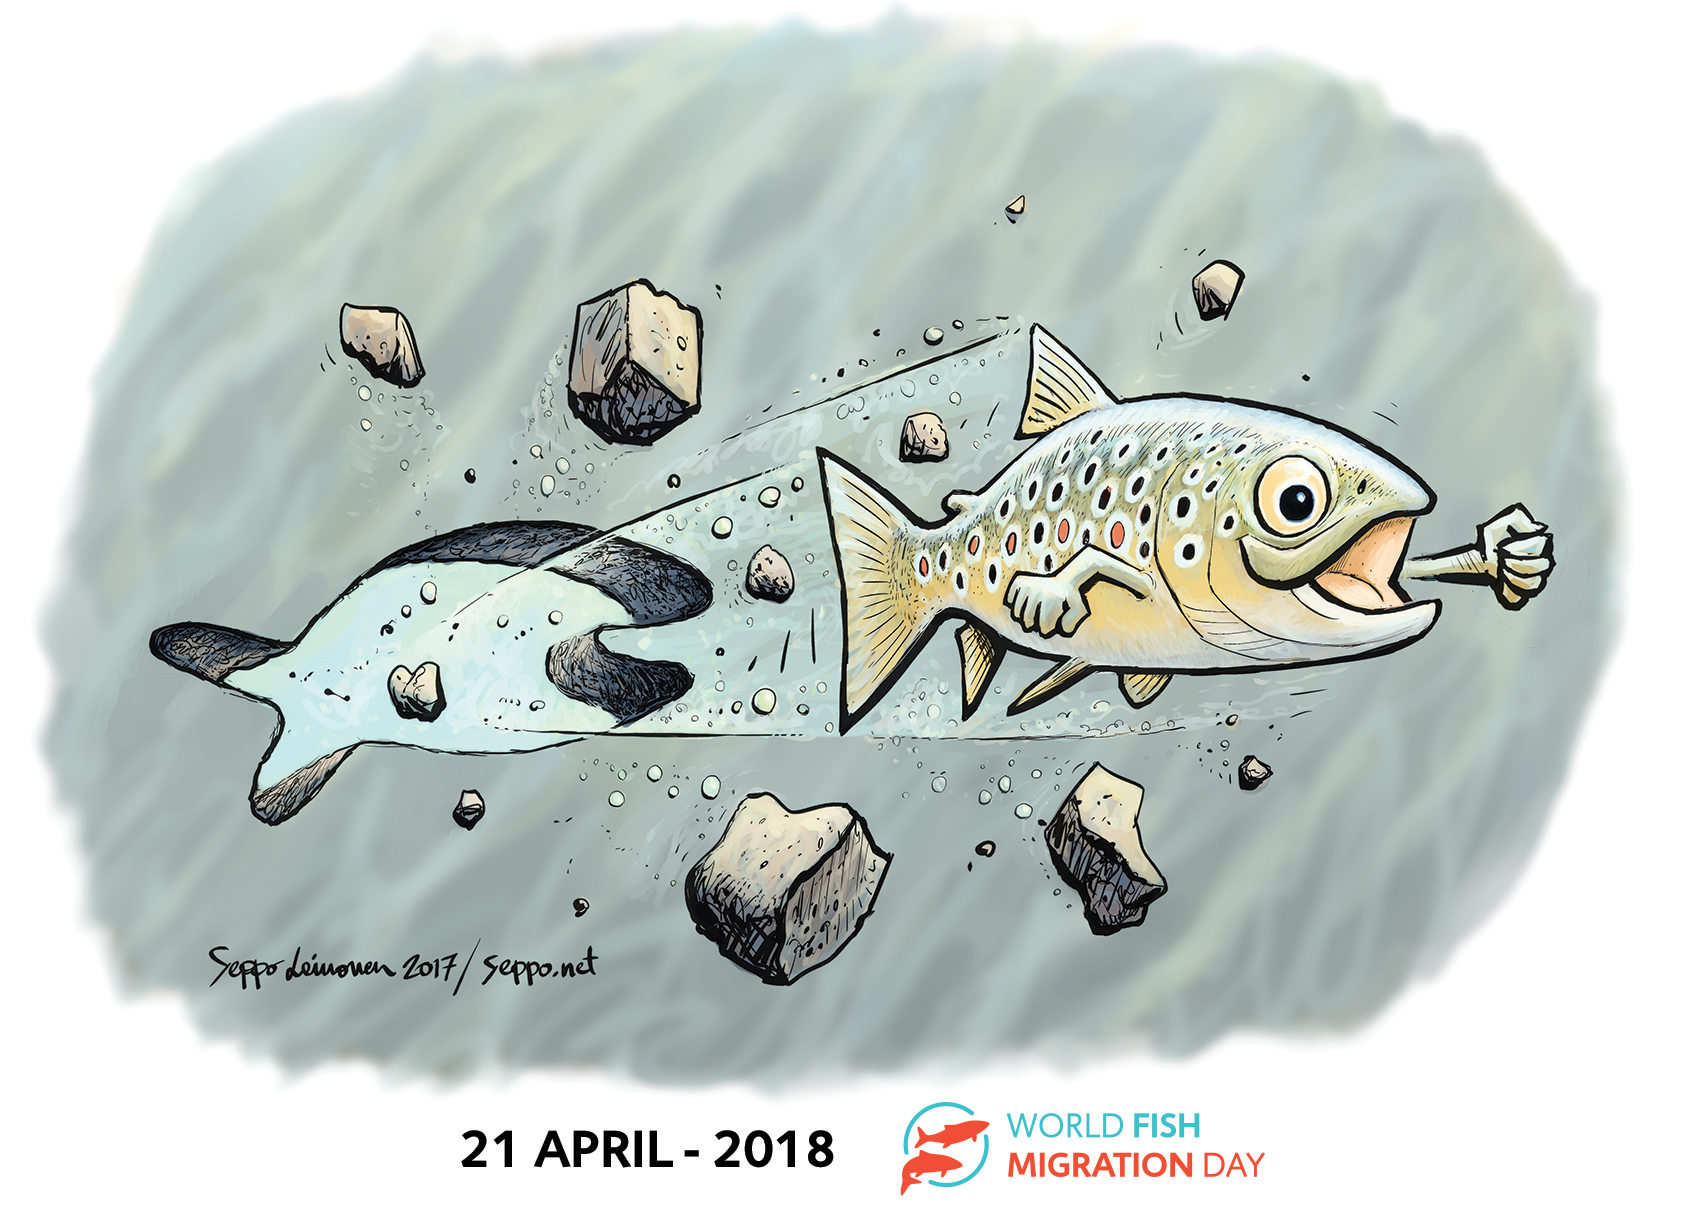 Ga mee op excursie tijdens de World Fish Migration Day!